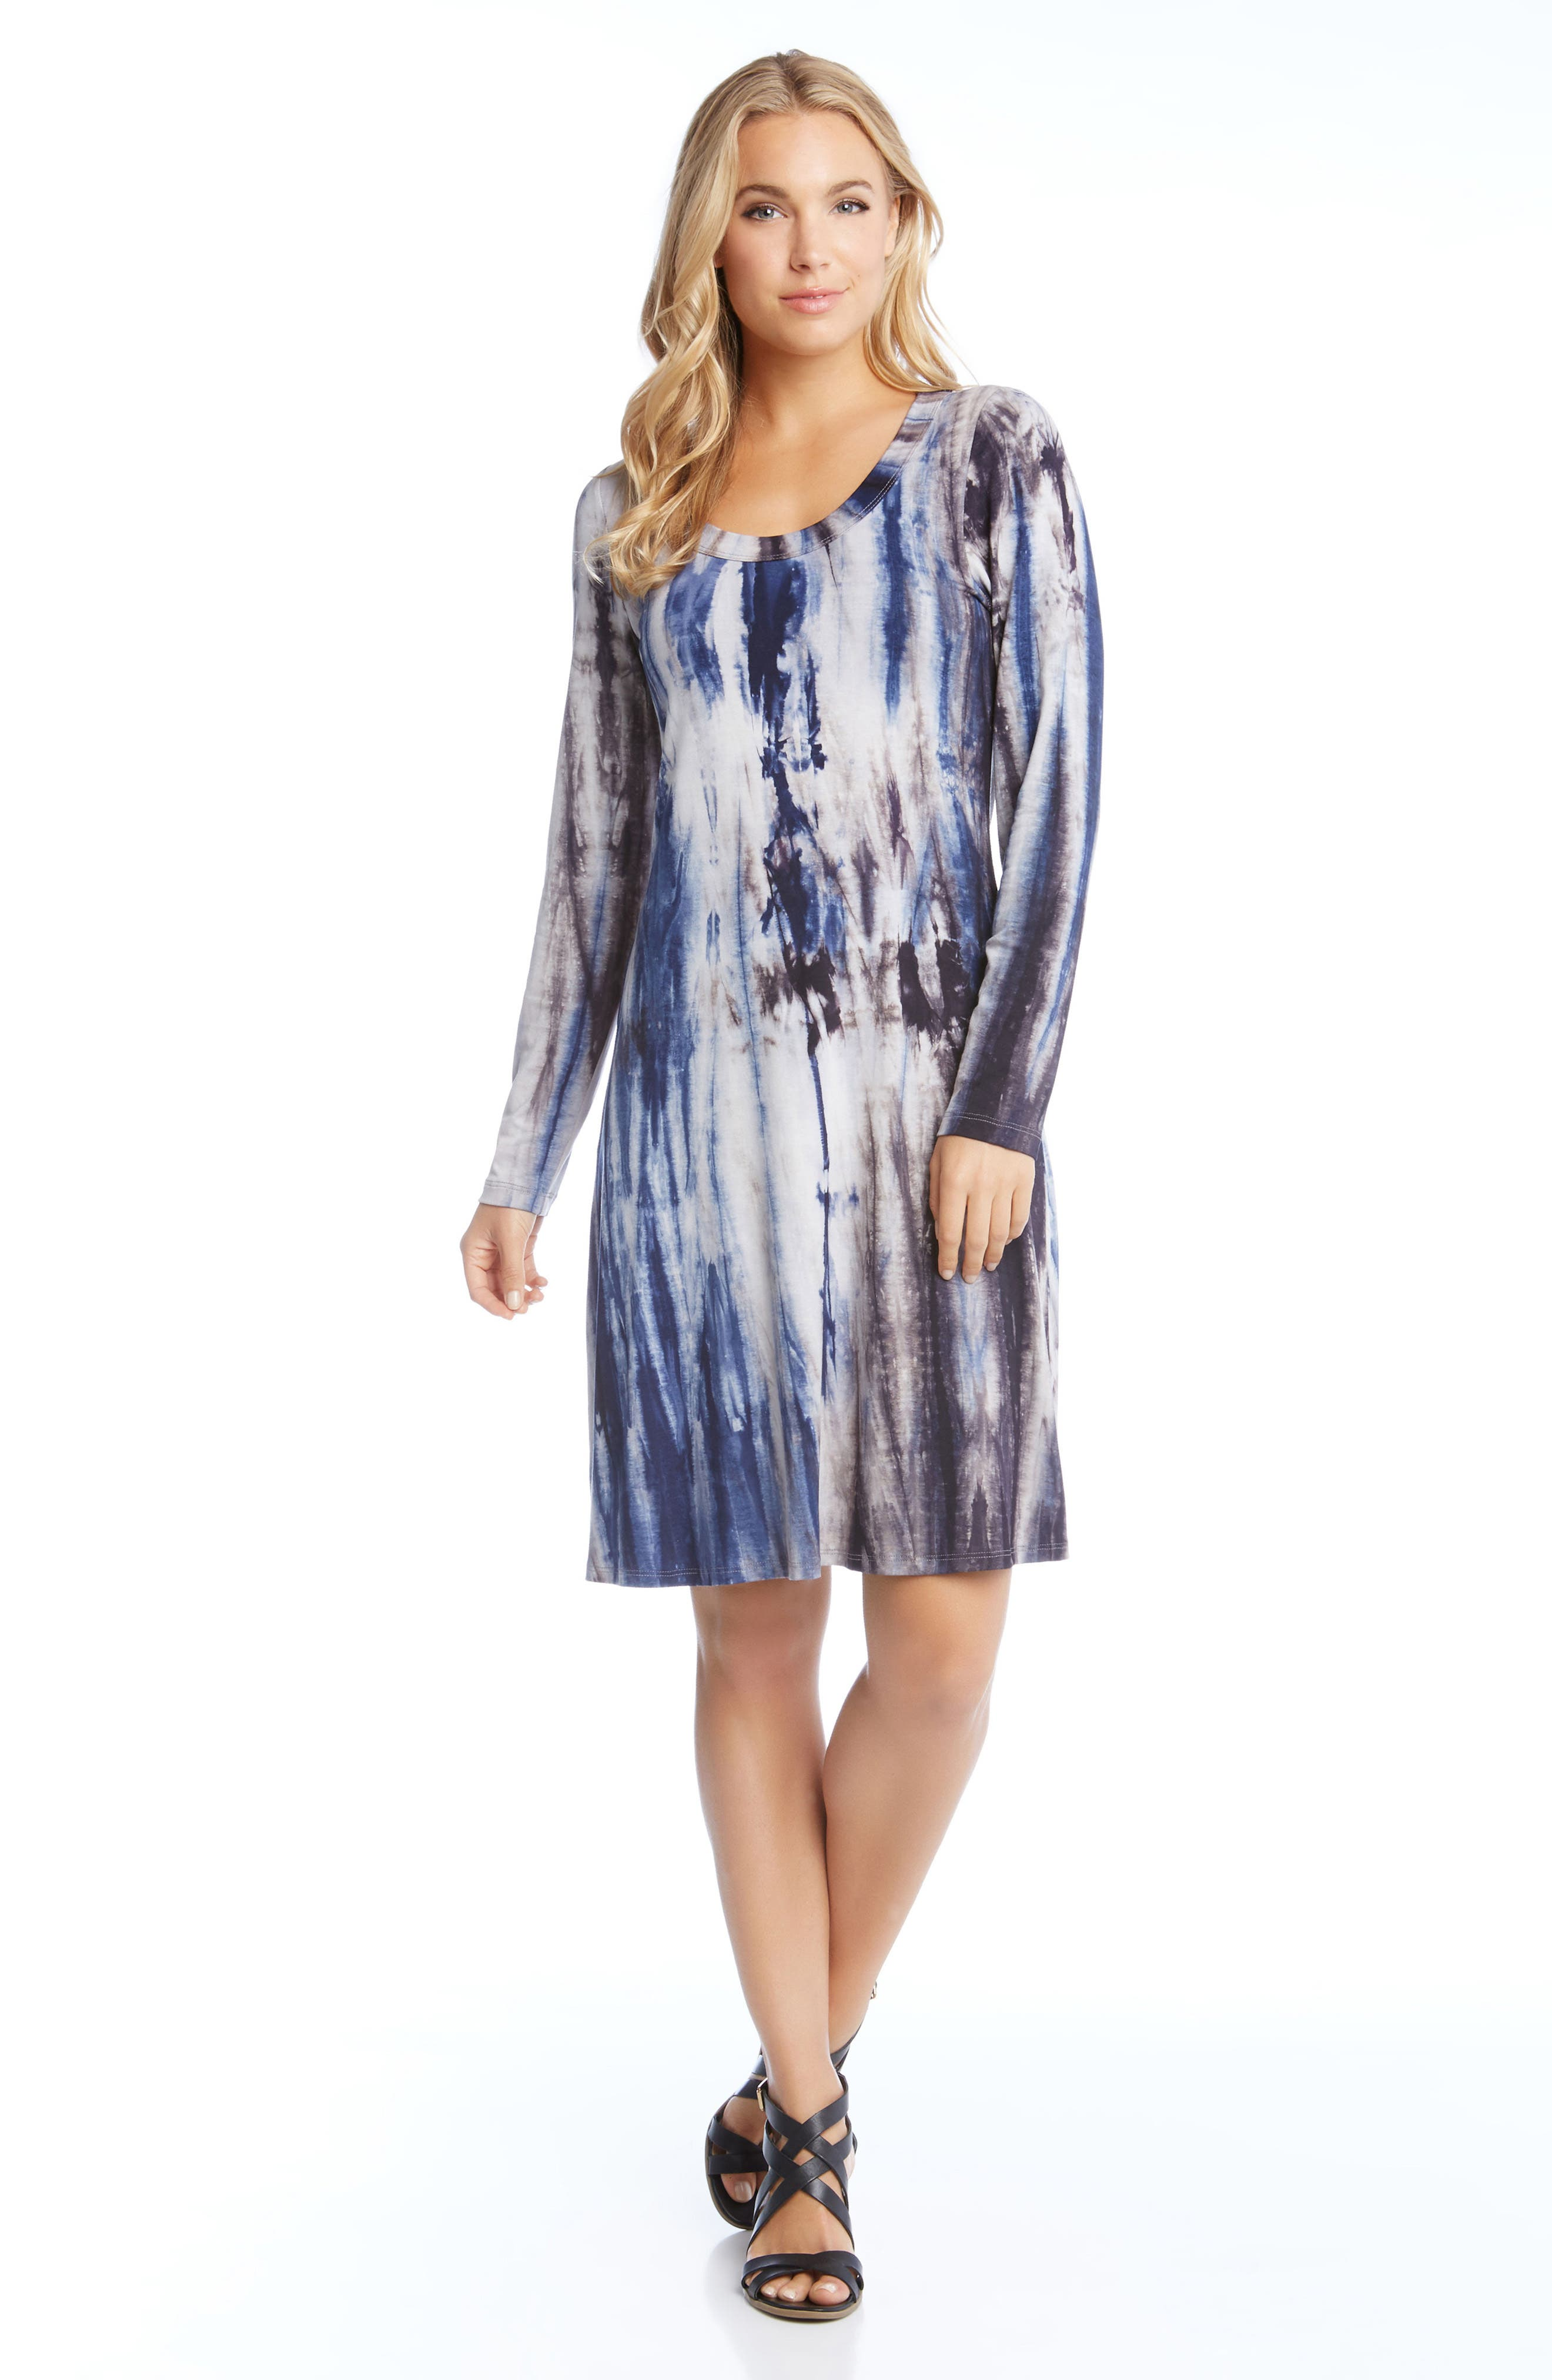 Scooped Neck A-Line Dress,                             Alternate thumbnail 3, color,